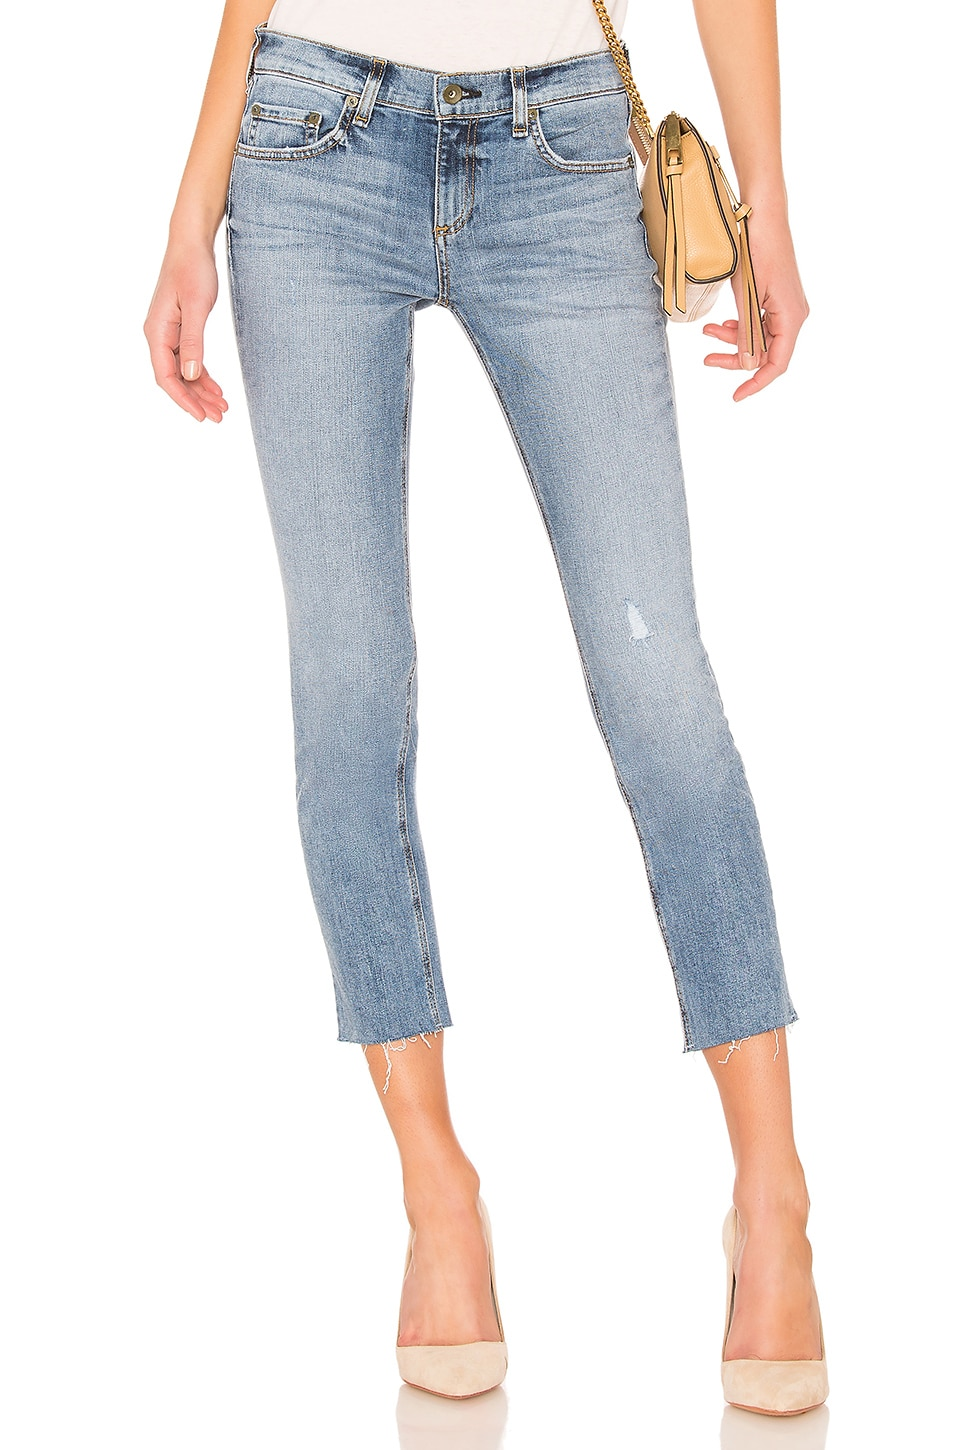 new women/'s jeans big star nina straight size from 30 to 34 inseam R,L,XL $158